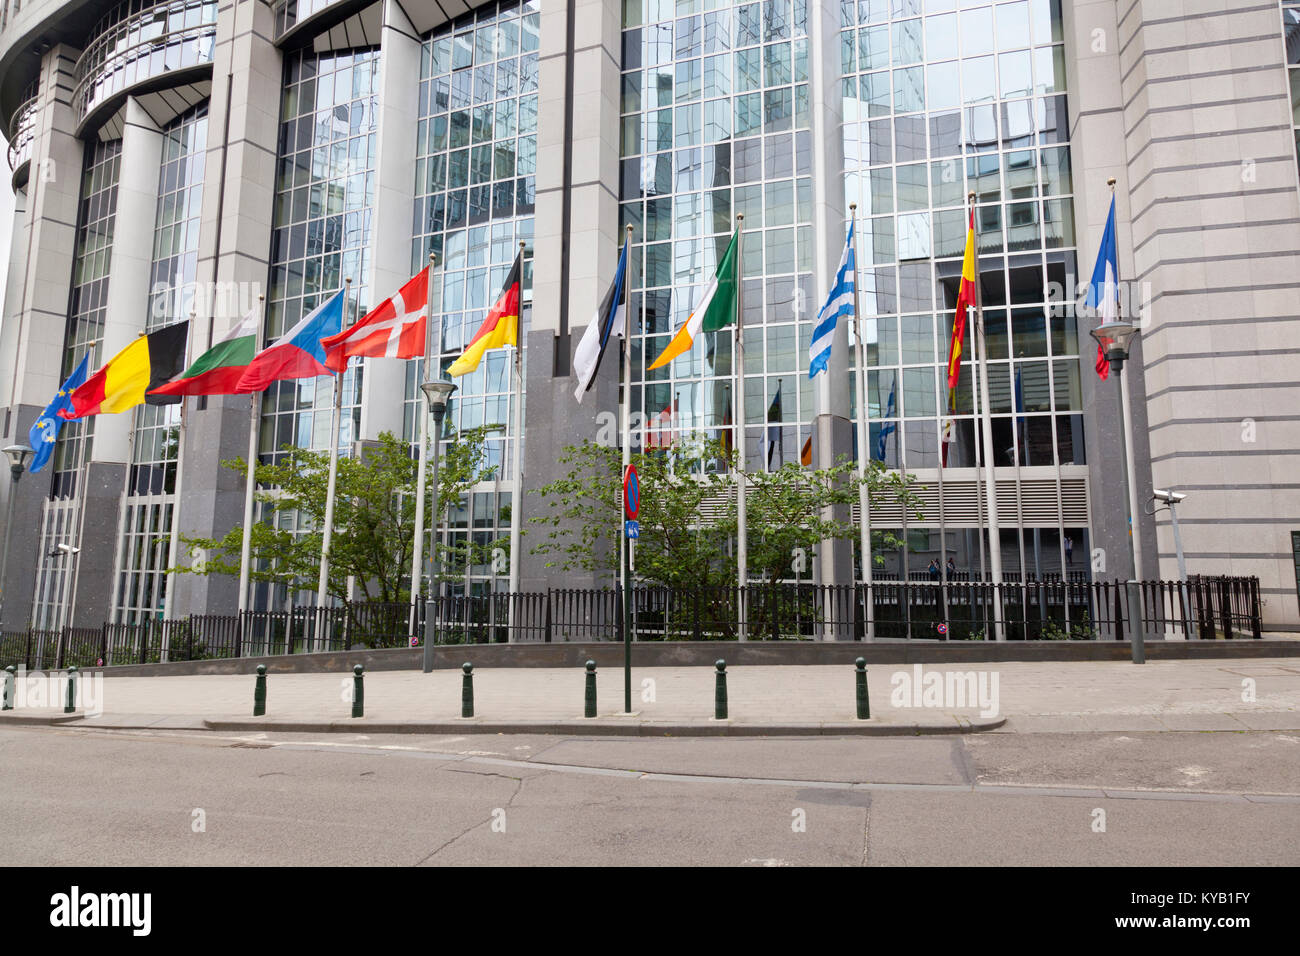 The European Parliament buildings in Brussels, Belgium with lots of European flags. - Stock Image